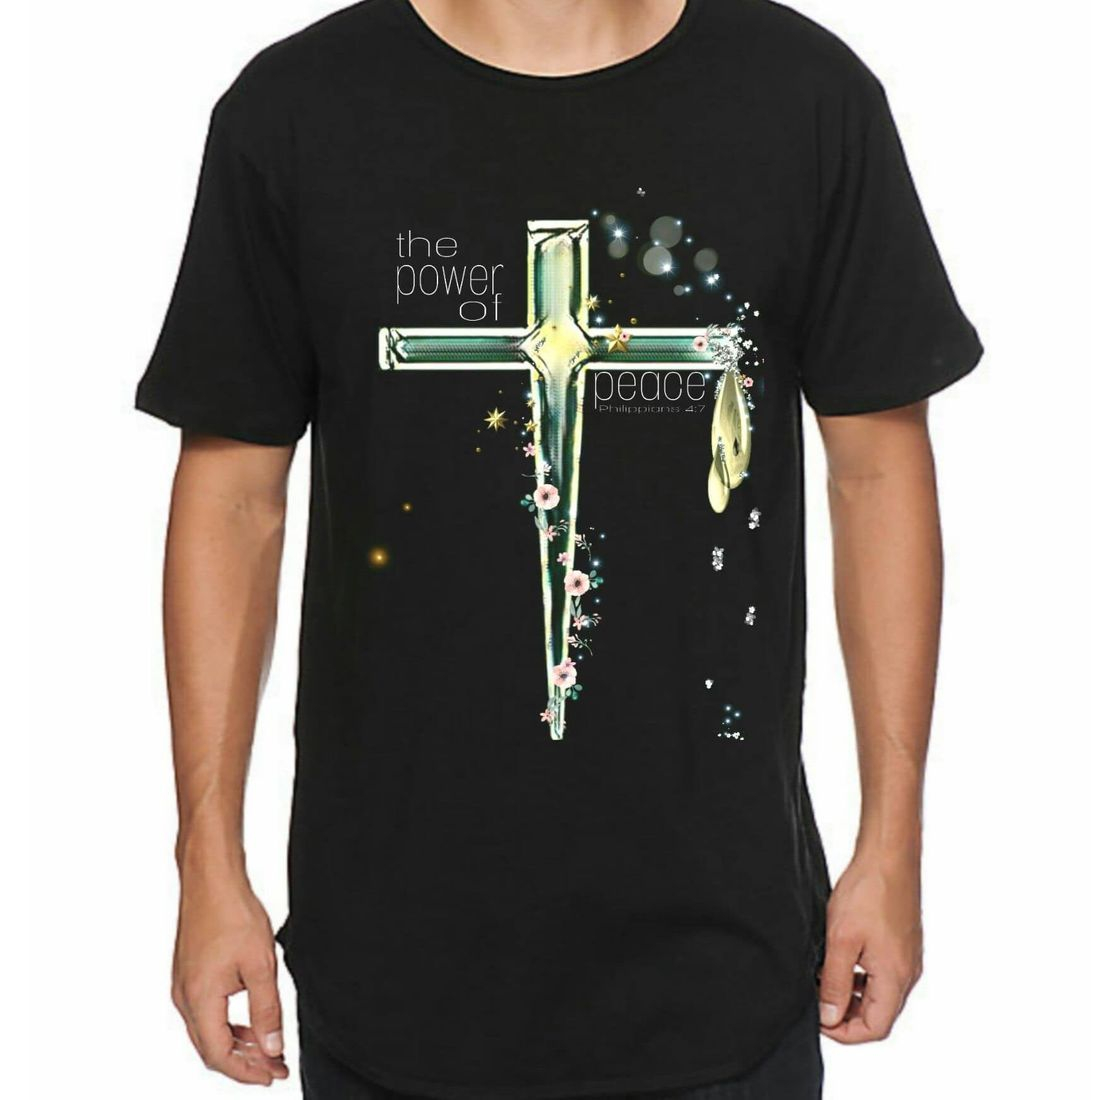 White Wolf Clothing. Christian T-Shirts - POWER OF PEACE